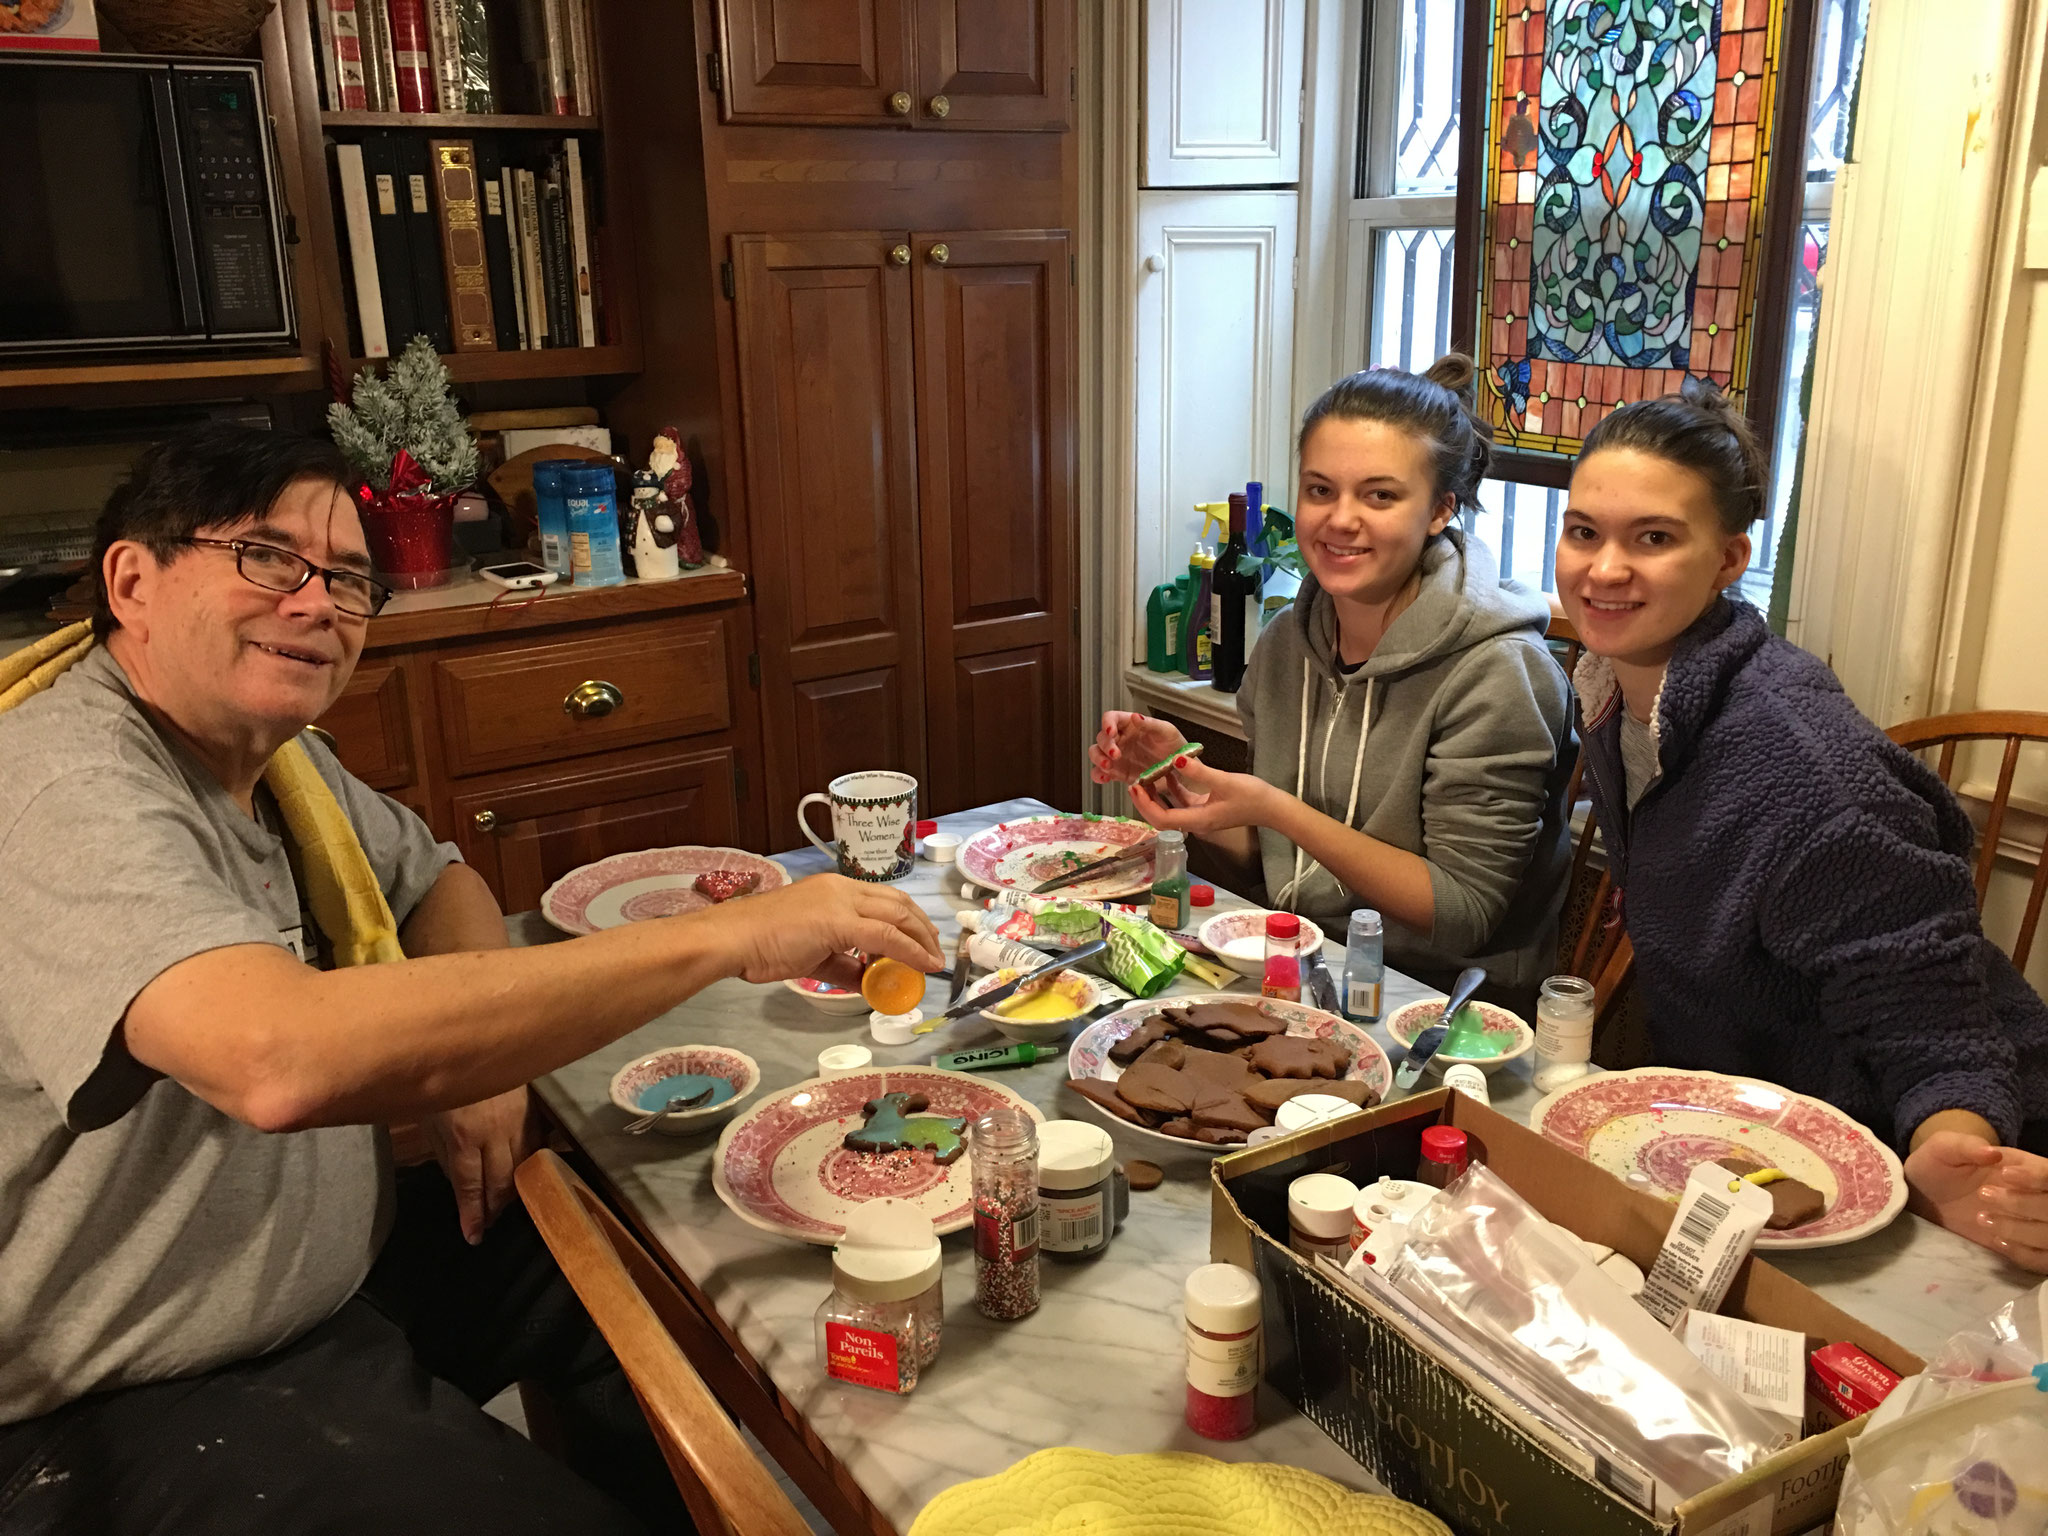 John, Ellie & Kate decorating cookies!